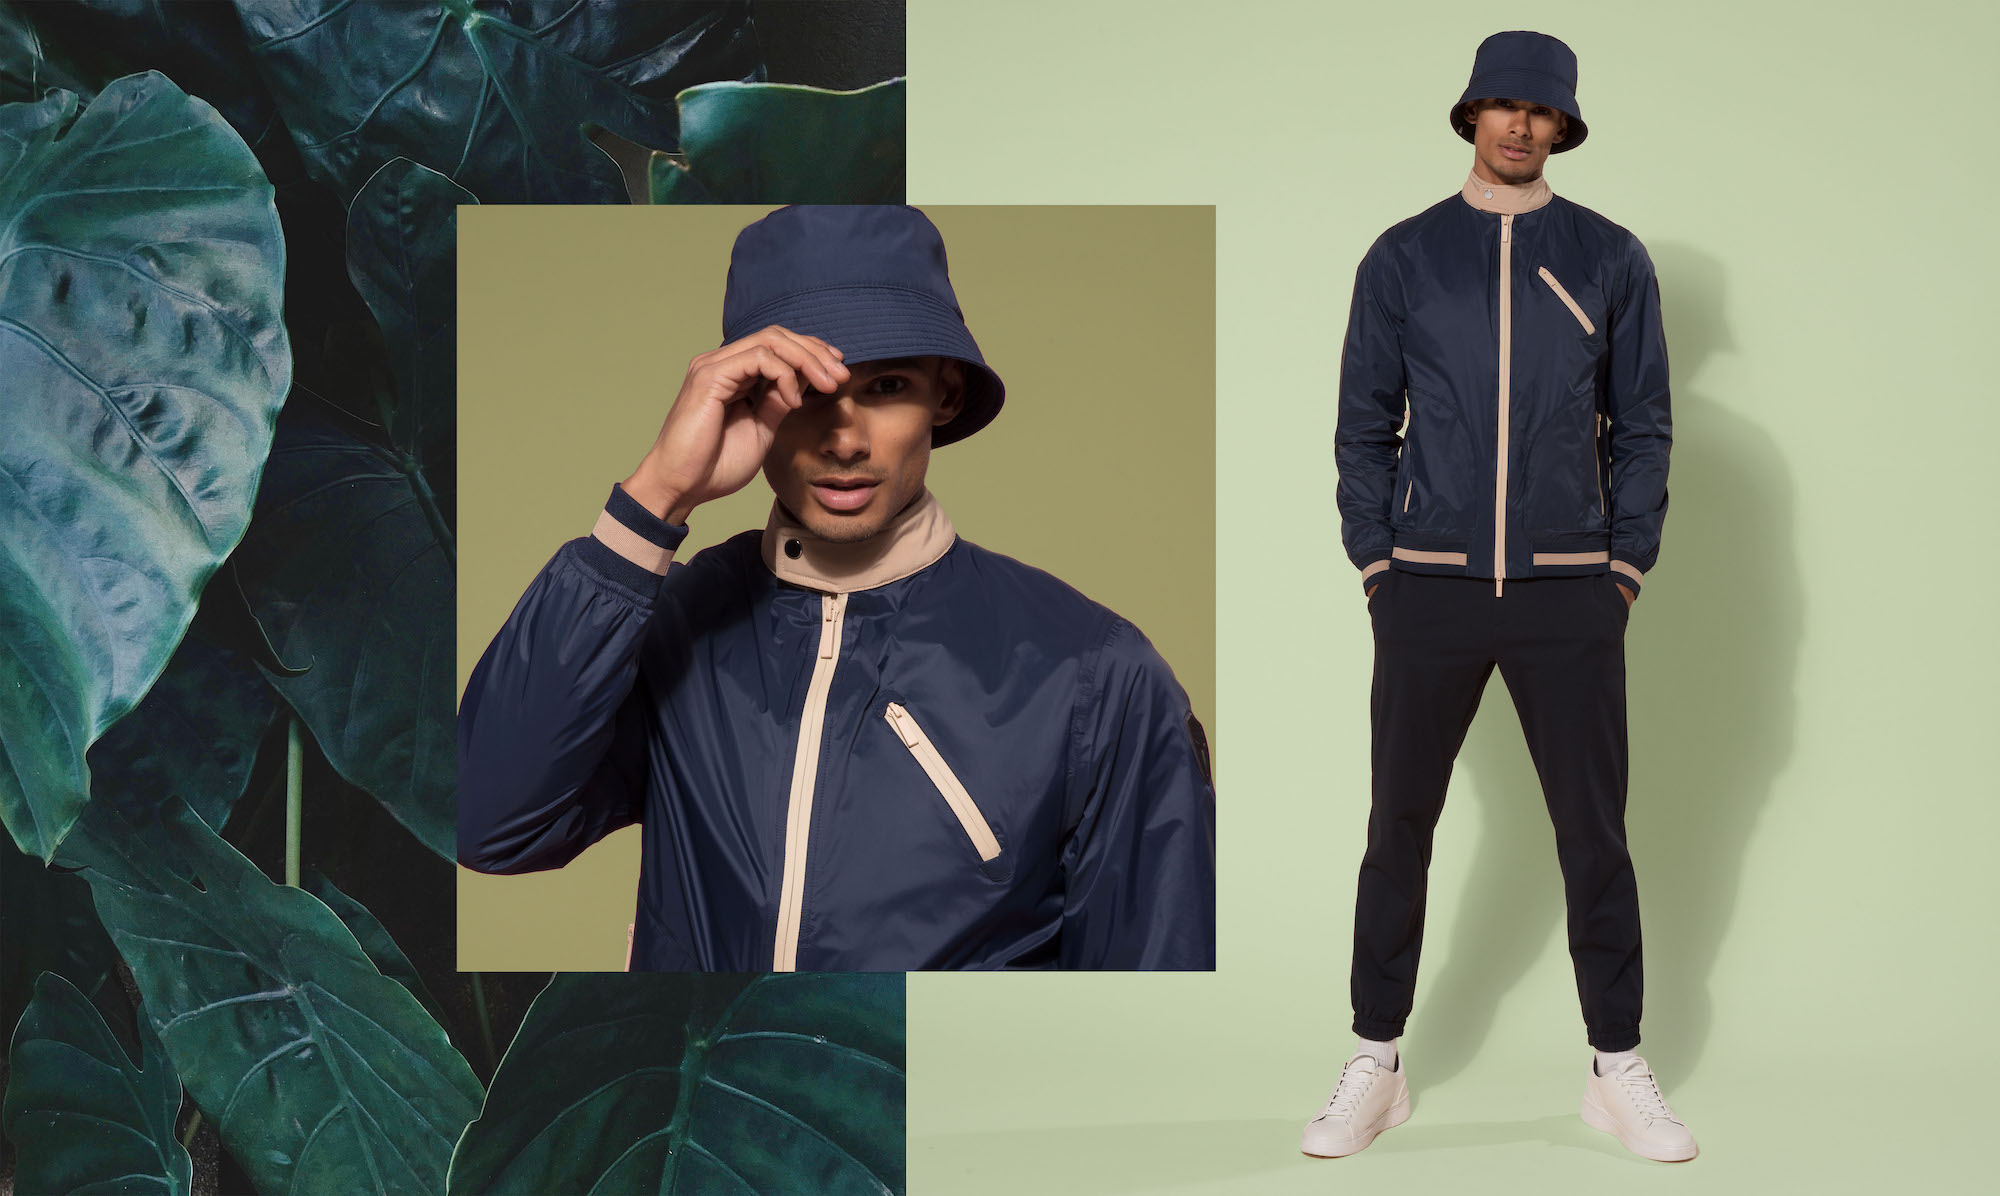 outerwear brand nobis launch their SS20 collection